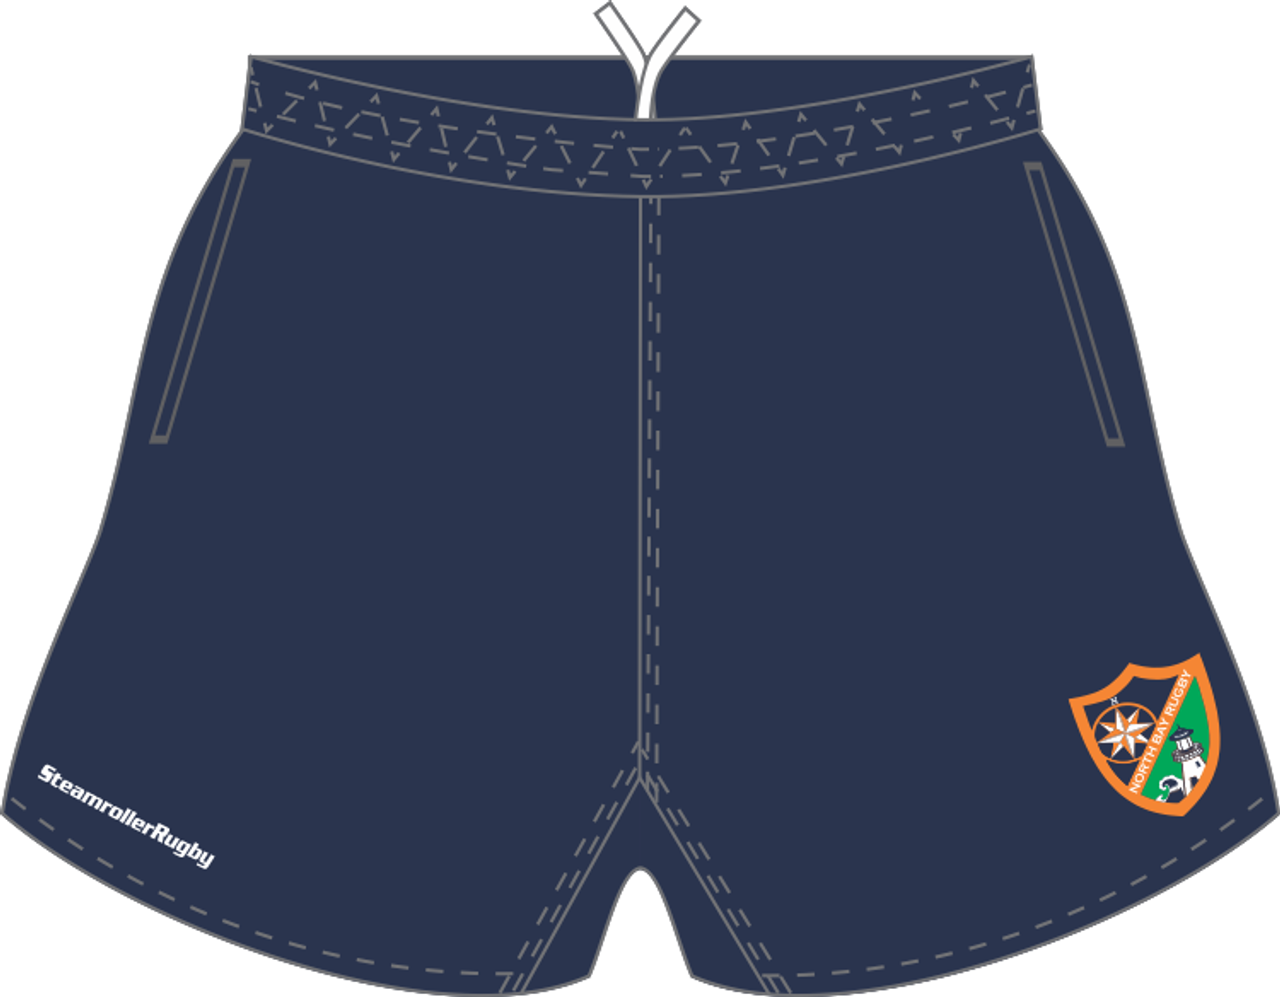 North Bay Pocketed Performance Rugby Shorts